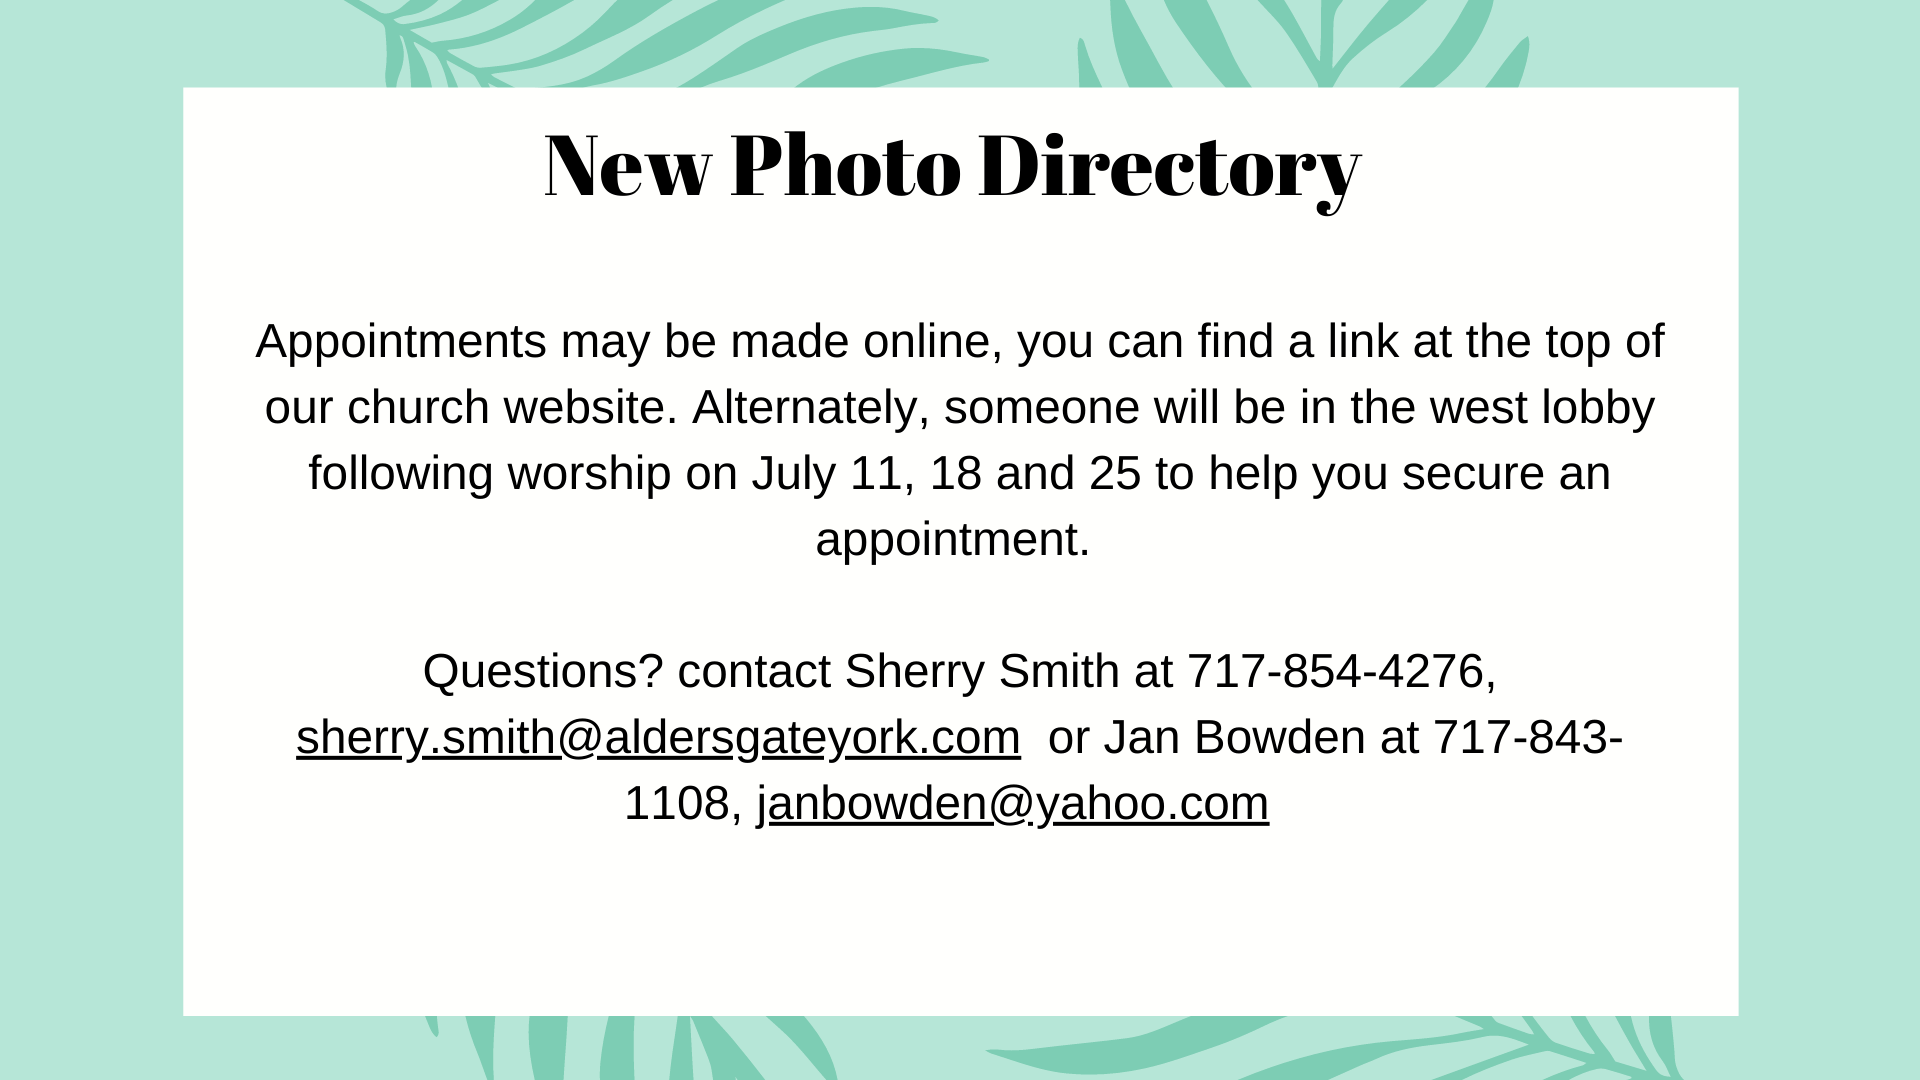 New Photo Directory Coming Soon!